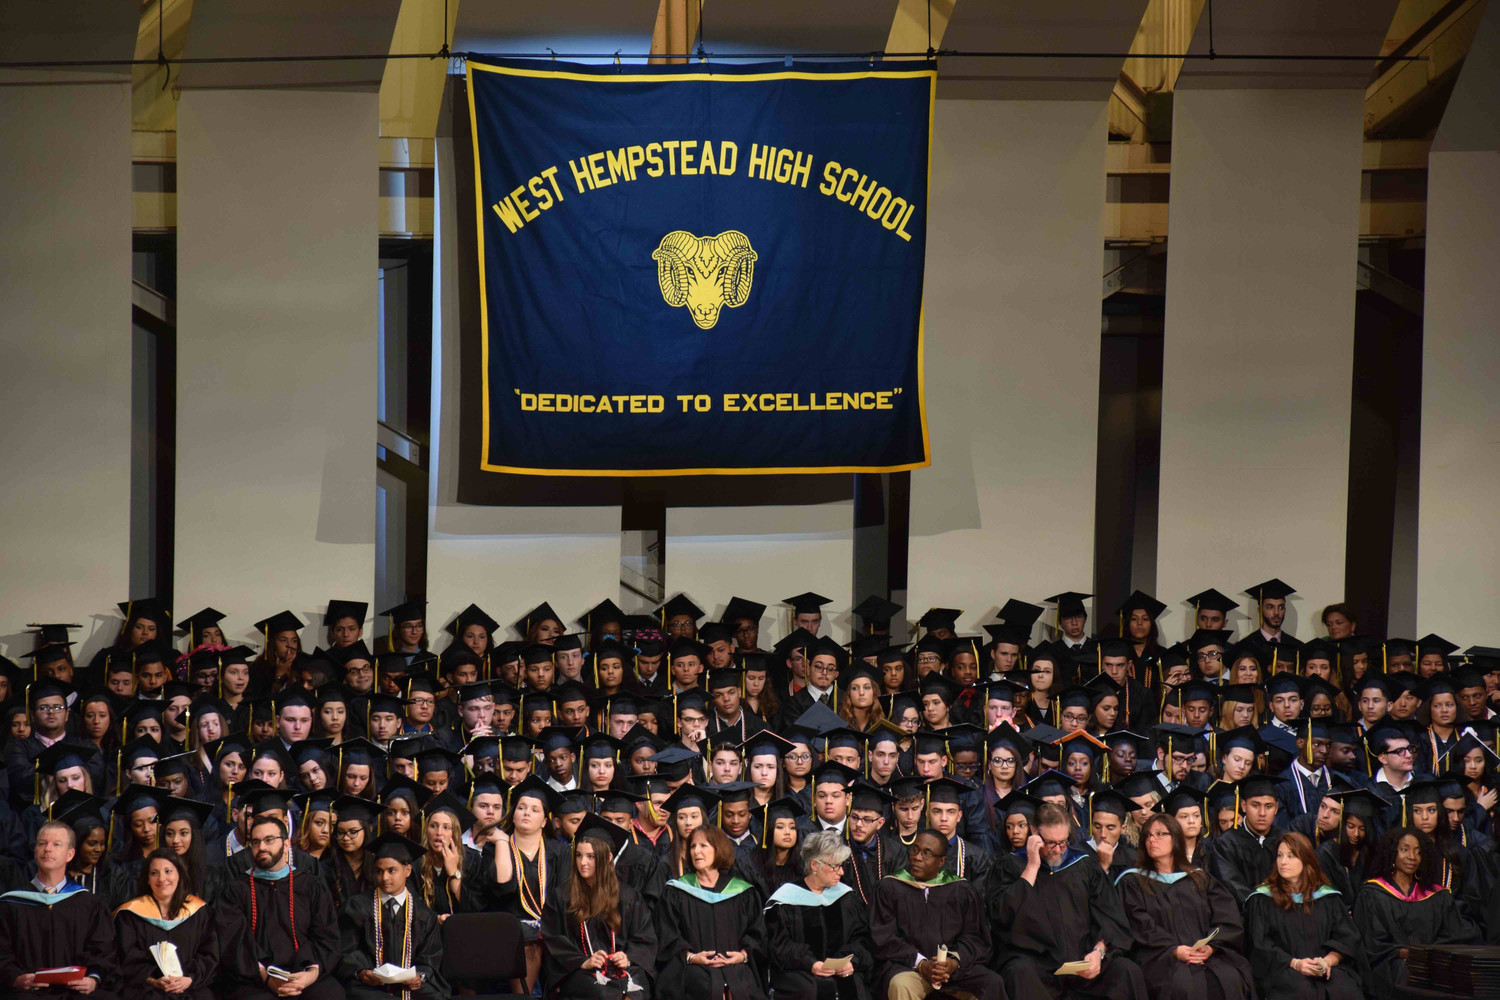 Members of the West Hempstead School District joined the high school's class of 2018 graduation ceremony on June 24.